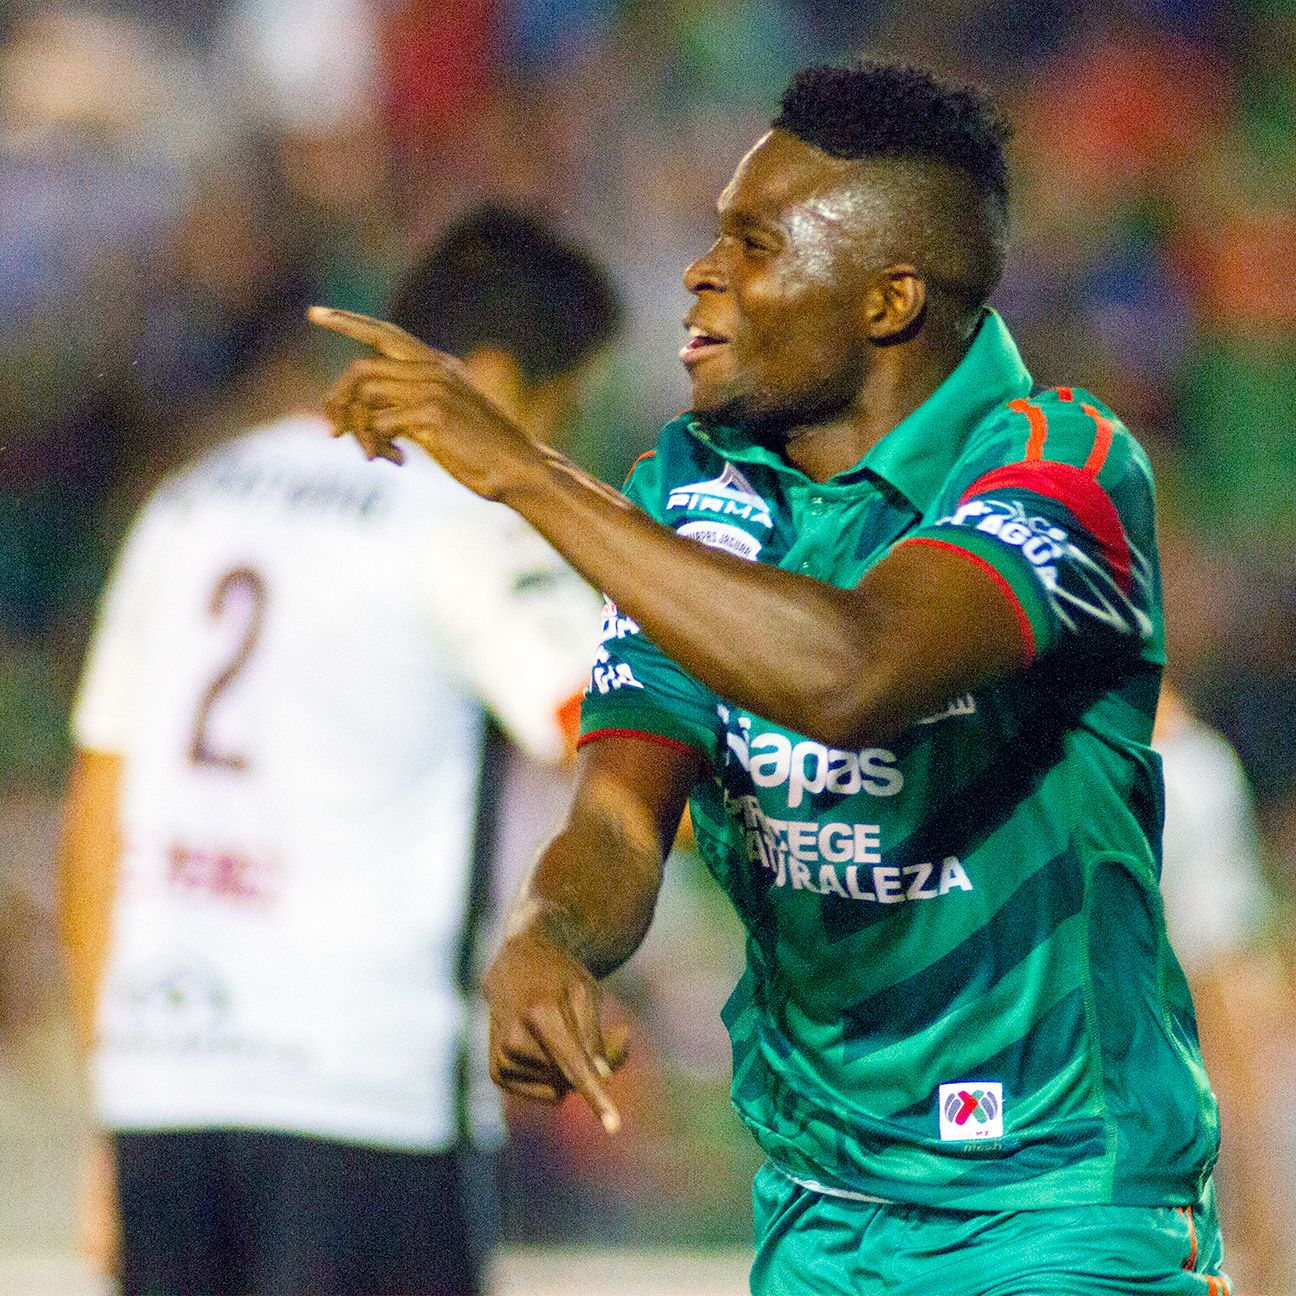 Chiapas striker Aviles Hurtado may hail from Colombia, but his international future could lie with Mexico.